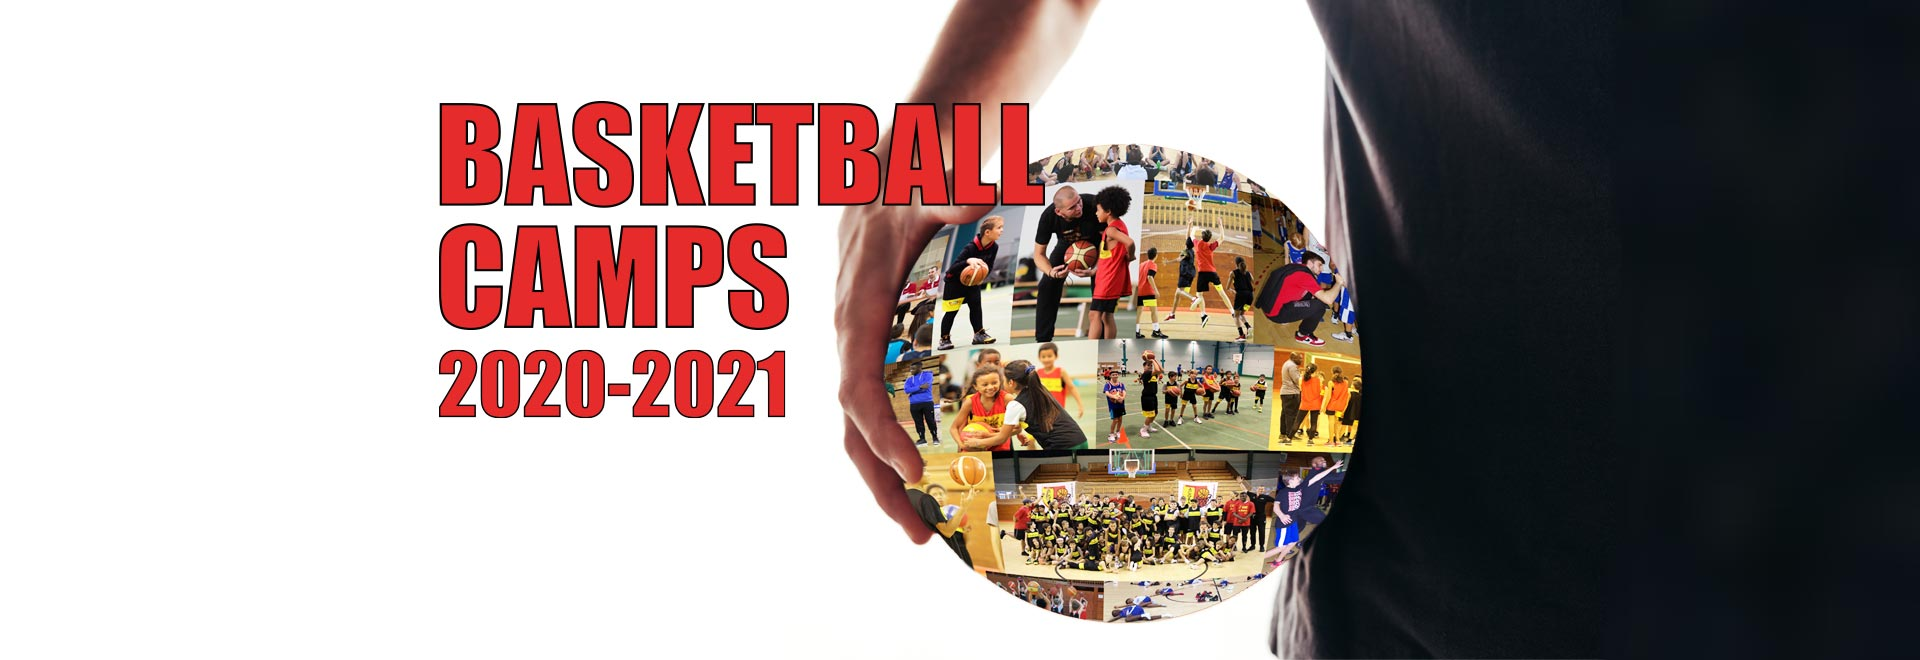 ACGBA camp basketball 2020-2021